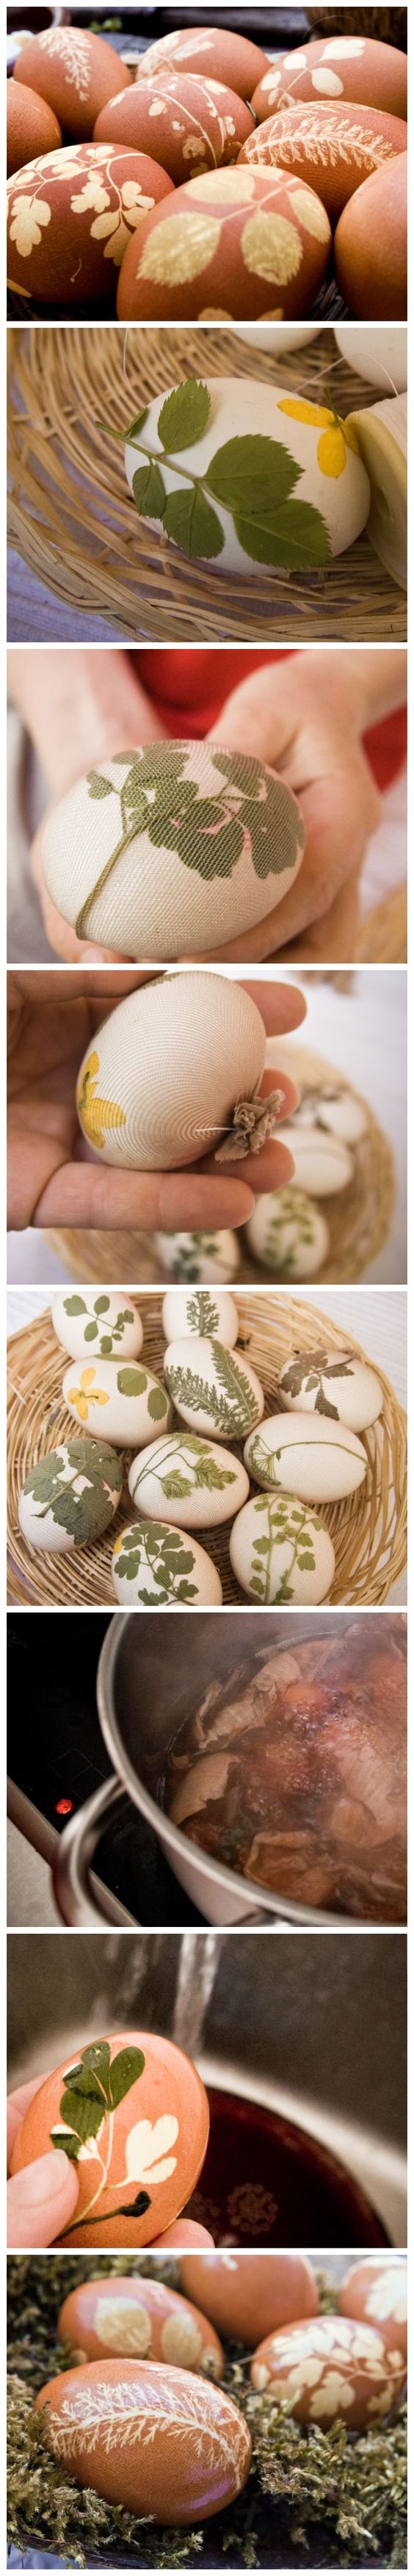 Original Pinner States: @Carla Tarleton can you believe this is on here! This is so crazy that this is on Pinterest because this tradition has been in my family for YEARS and we do this every Good Friday while the kids have an Easter egg hunt! One of my favorite family traditions by far!: